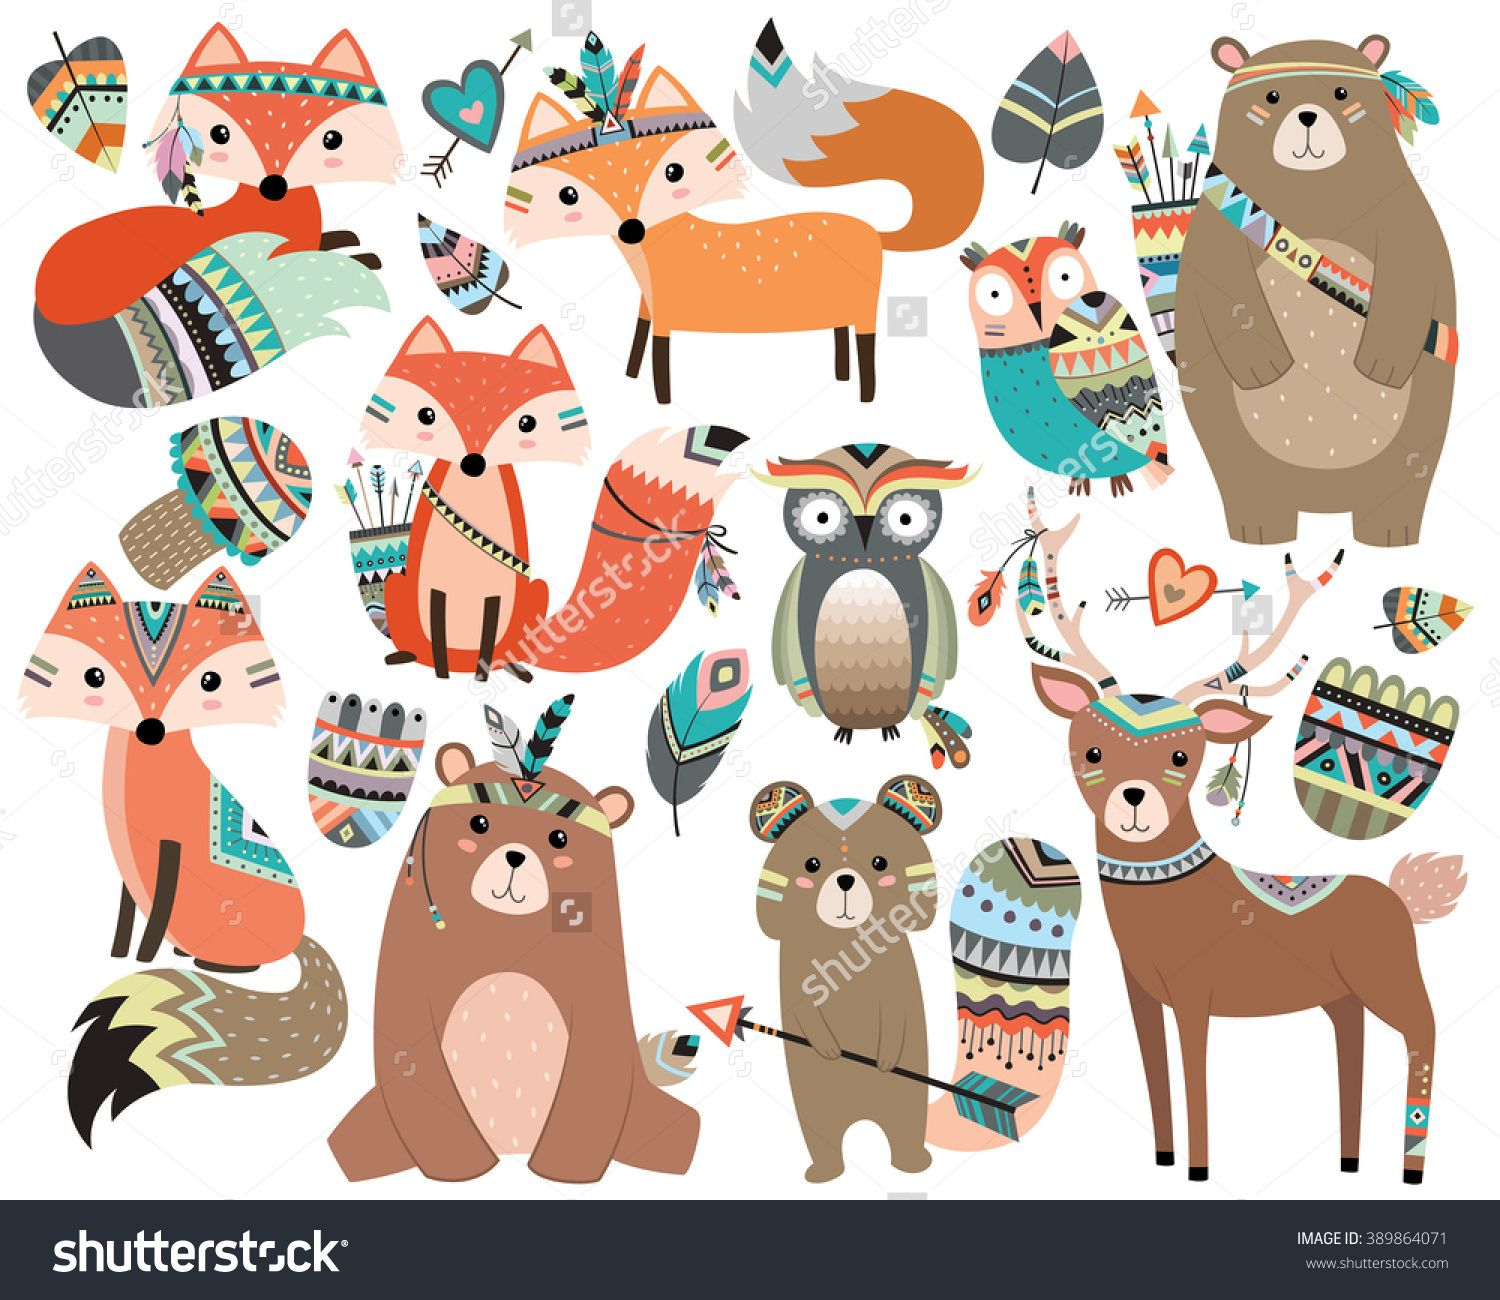 Woodland tribal forest animals. Boho clipart animal